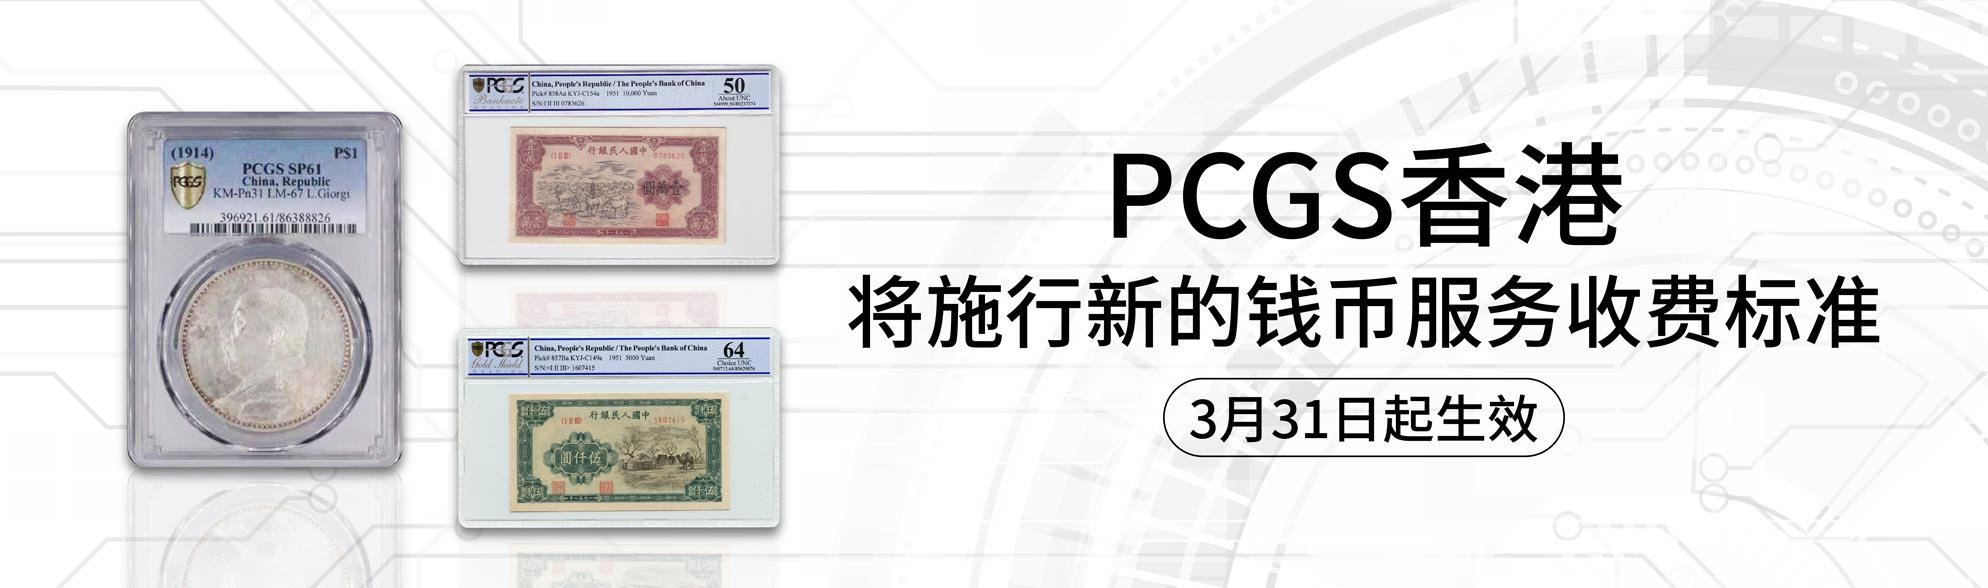 PCGS ASIA 35TH ANNIVERSARY REHOLDER SPECIAL